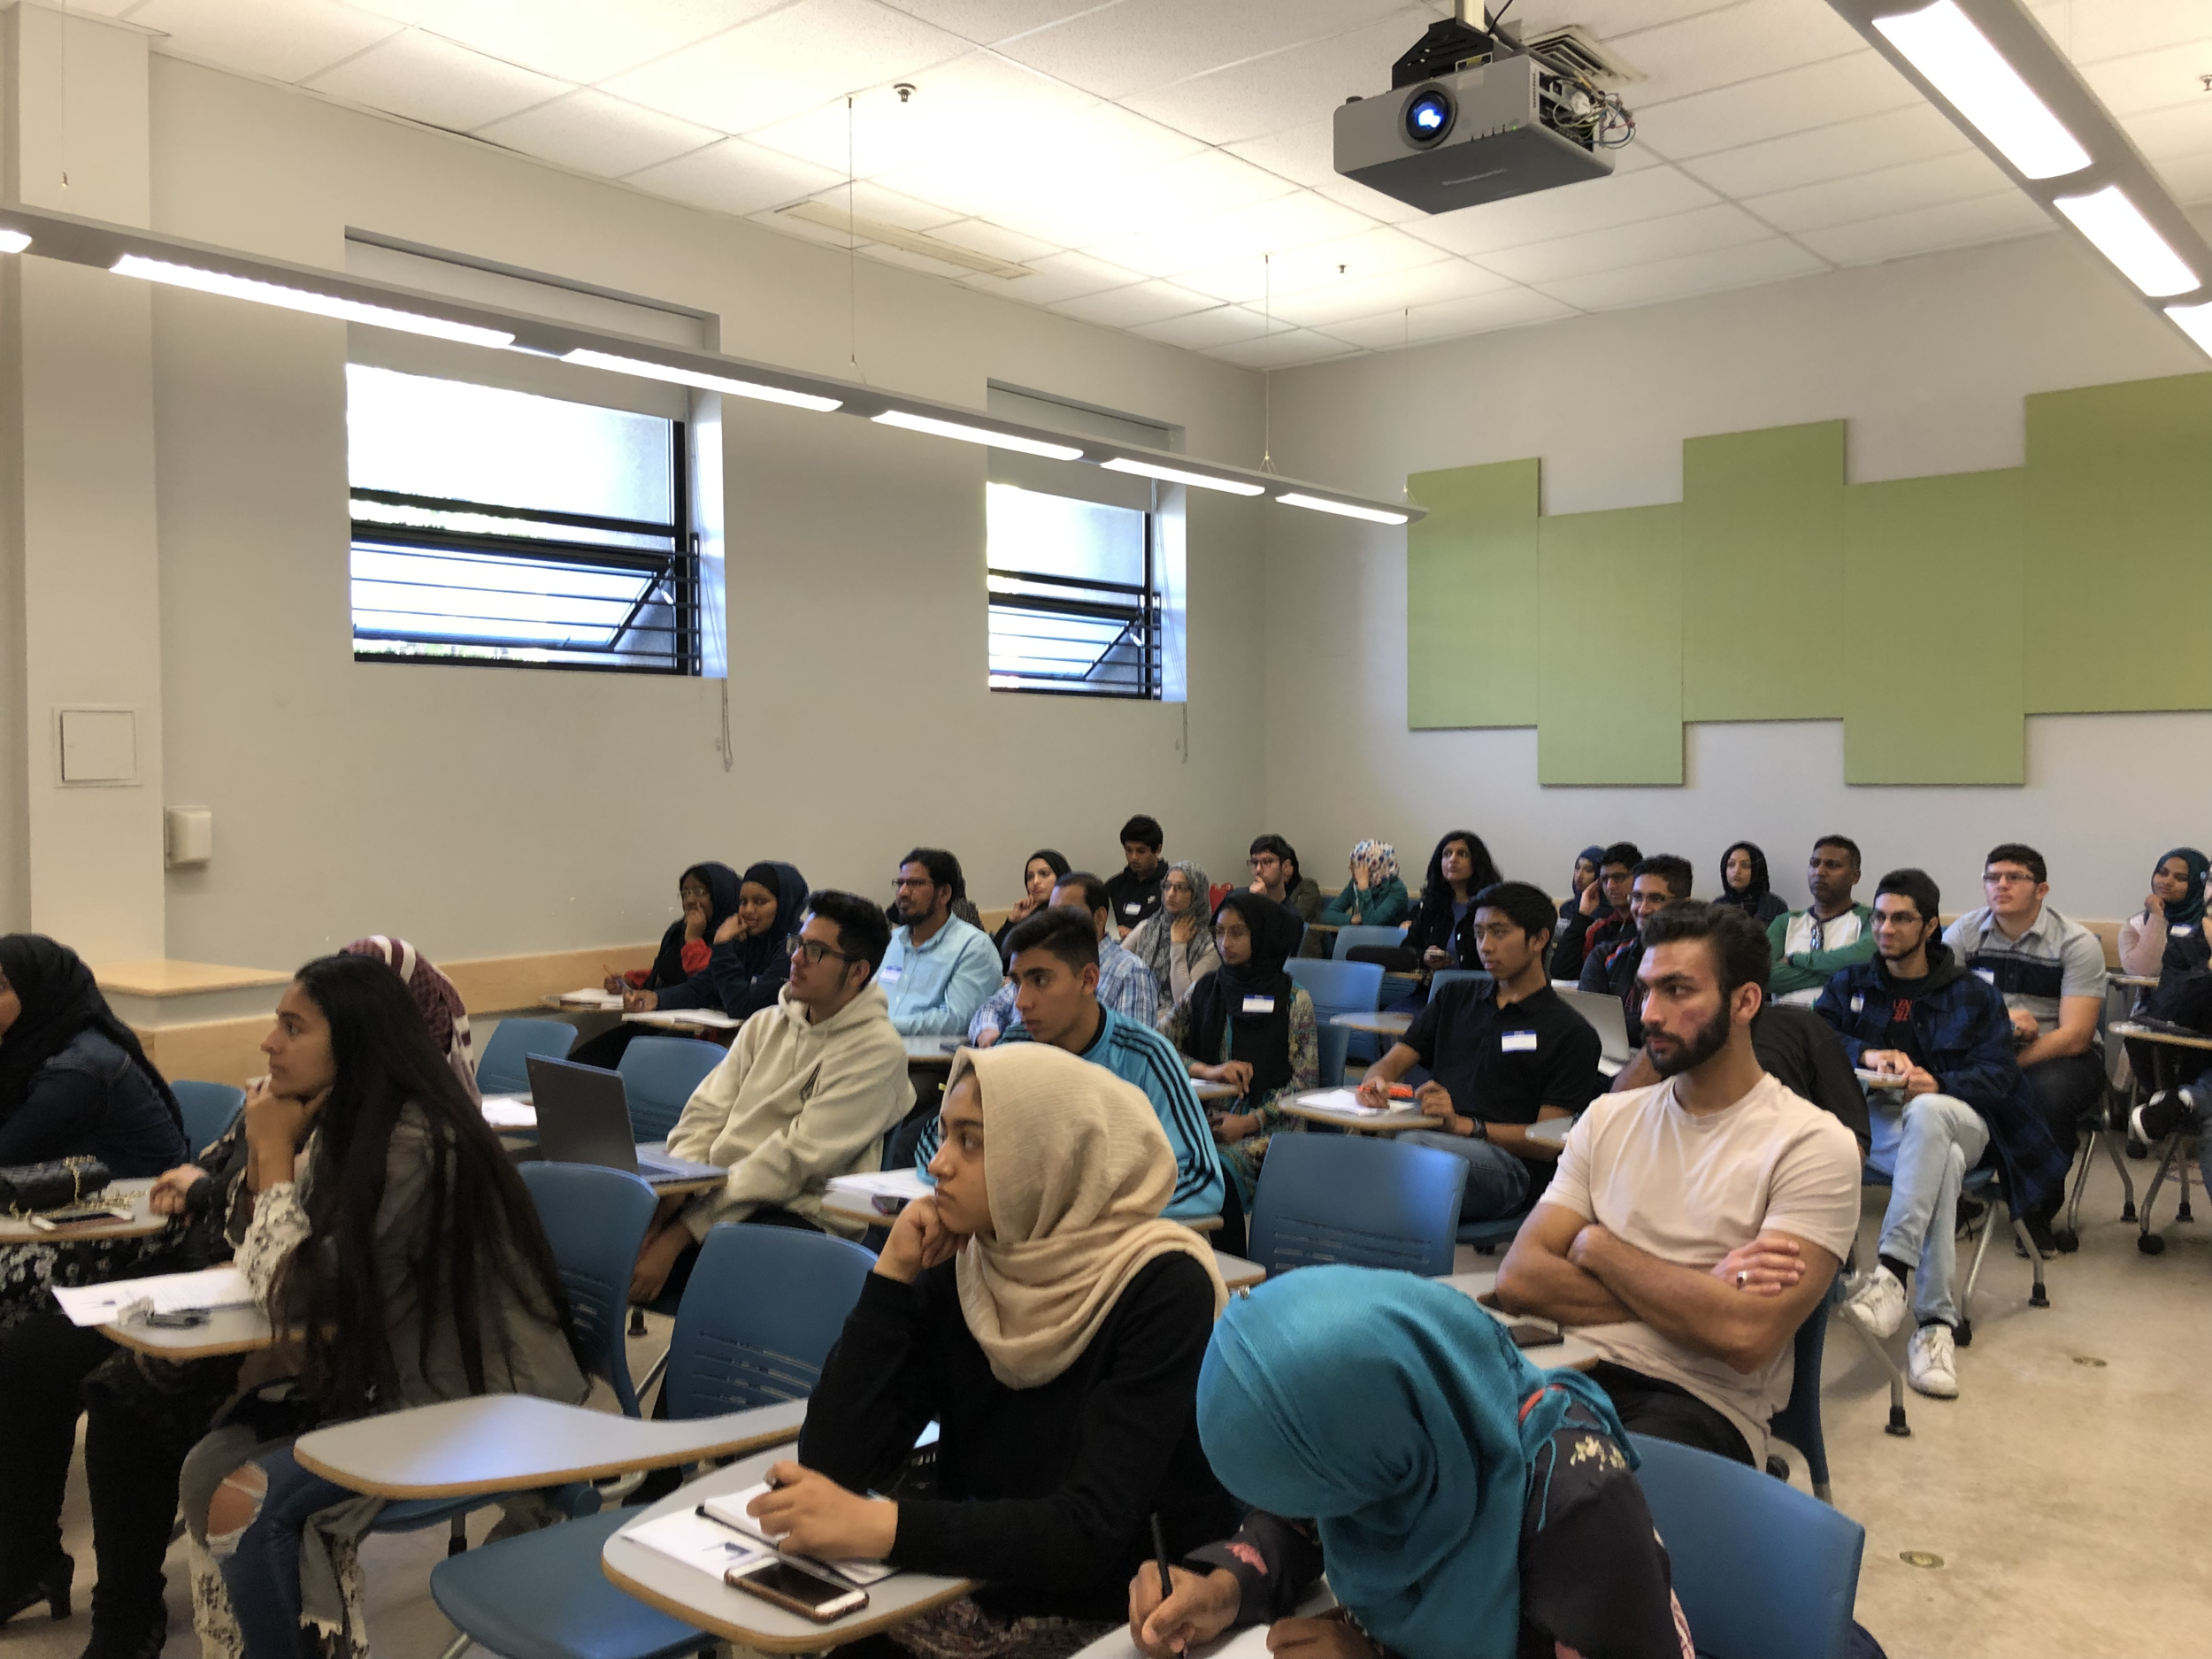 Youth Outreach - Dedicated to building ummahood between the Muslim youth of our community and our very own Cal students. Its mission is to maintain strong relationships and provide the youth with the resources and support they need to succeed academically and personally, through mentorship, tutoring, workshops, and/or social events.